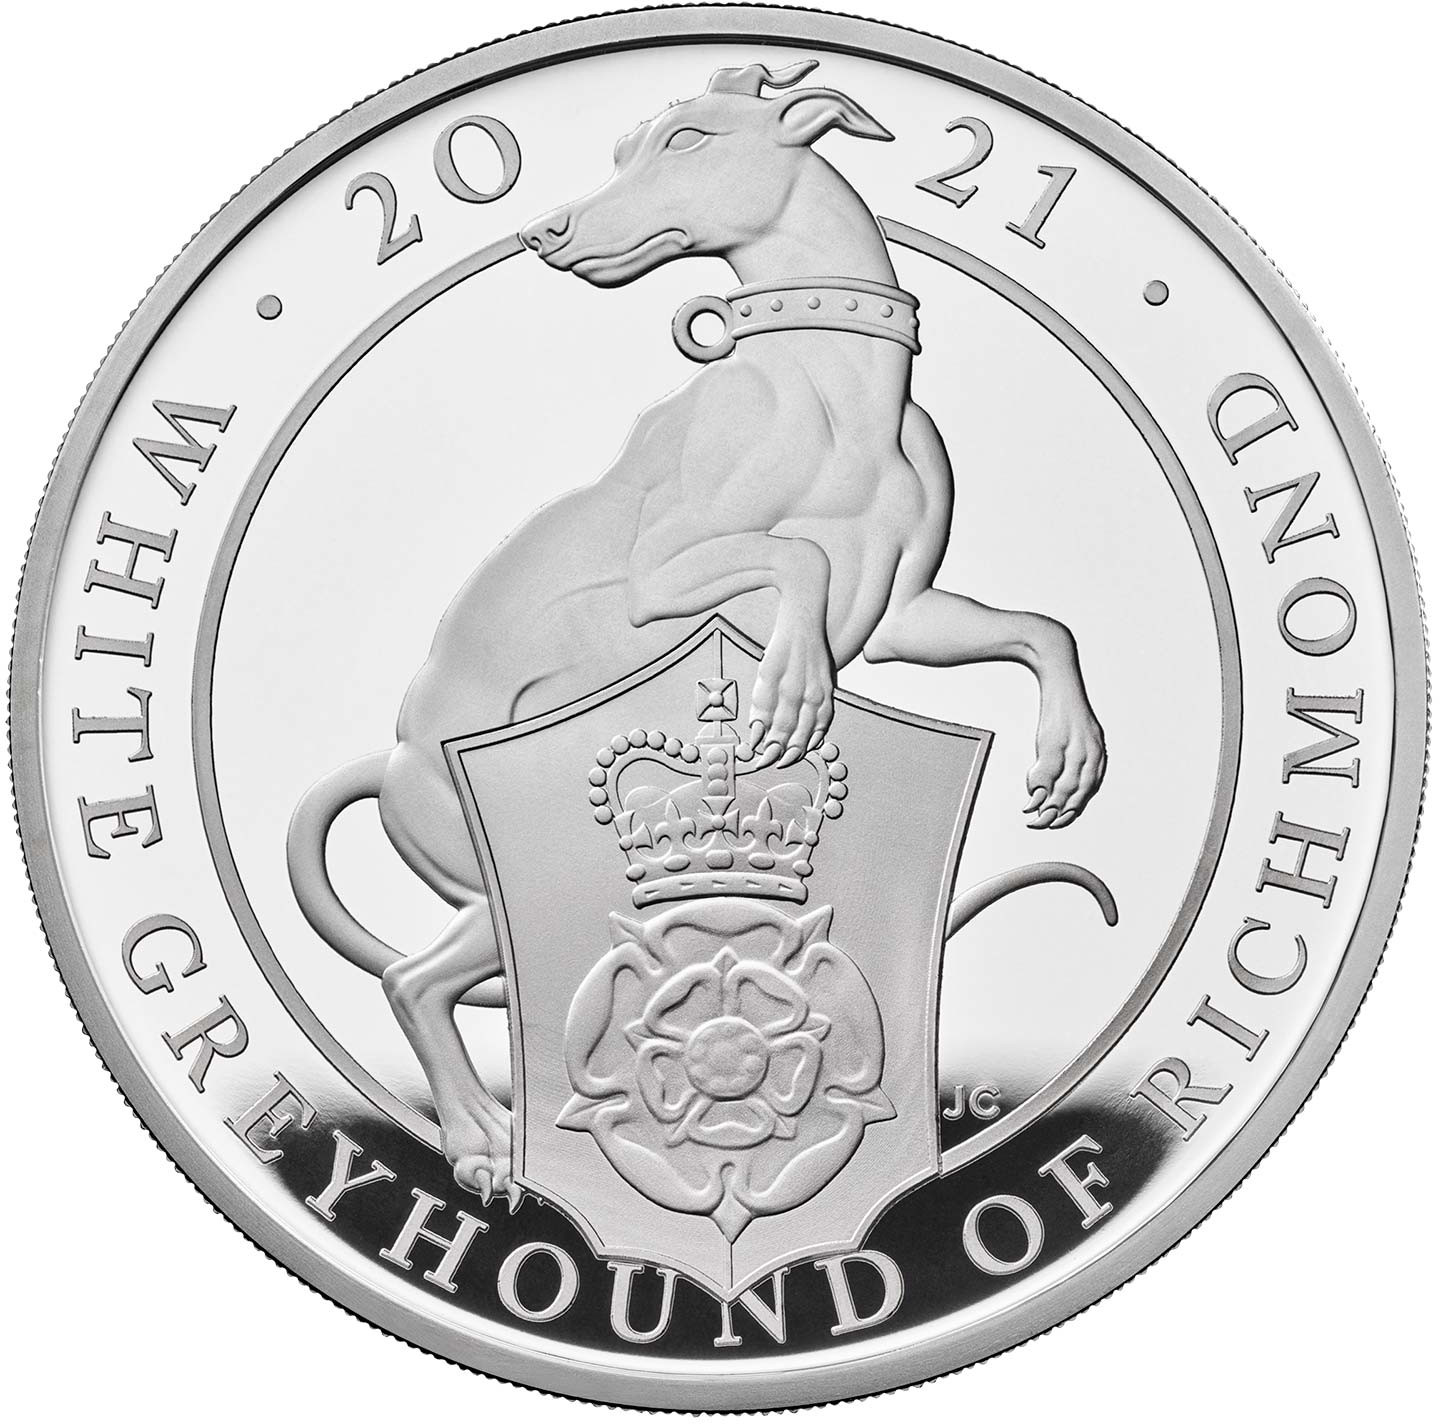 Maundy Twopence (Sterling silver): Photo Coin - Twopence (Maundy), Queen Victoria, Great Britain, 1892